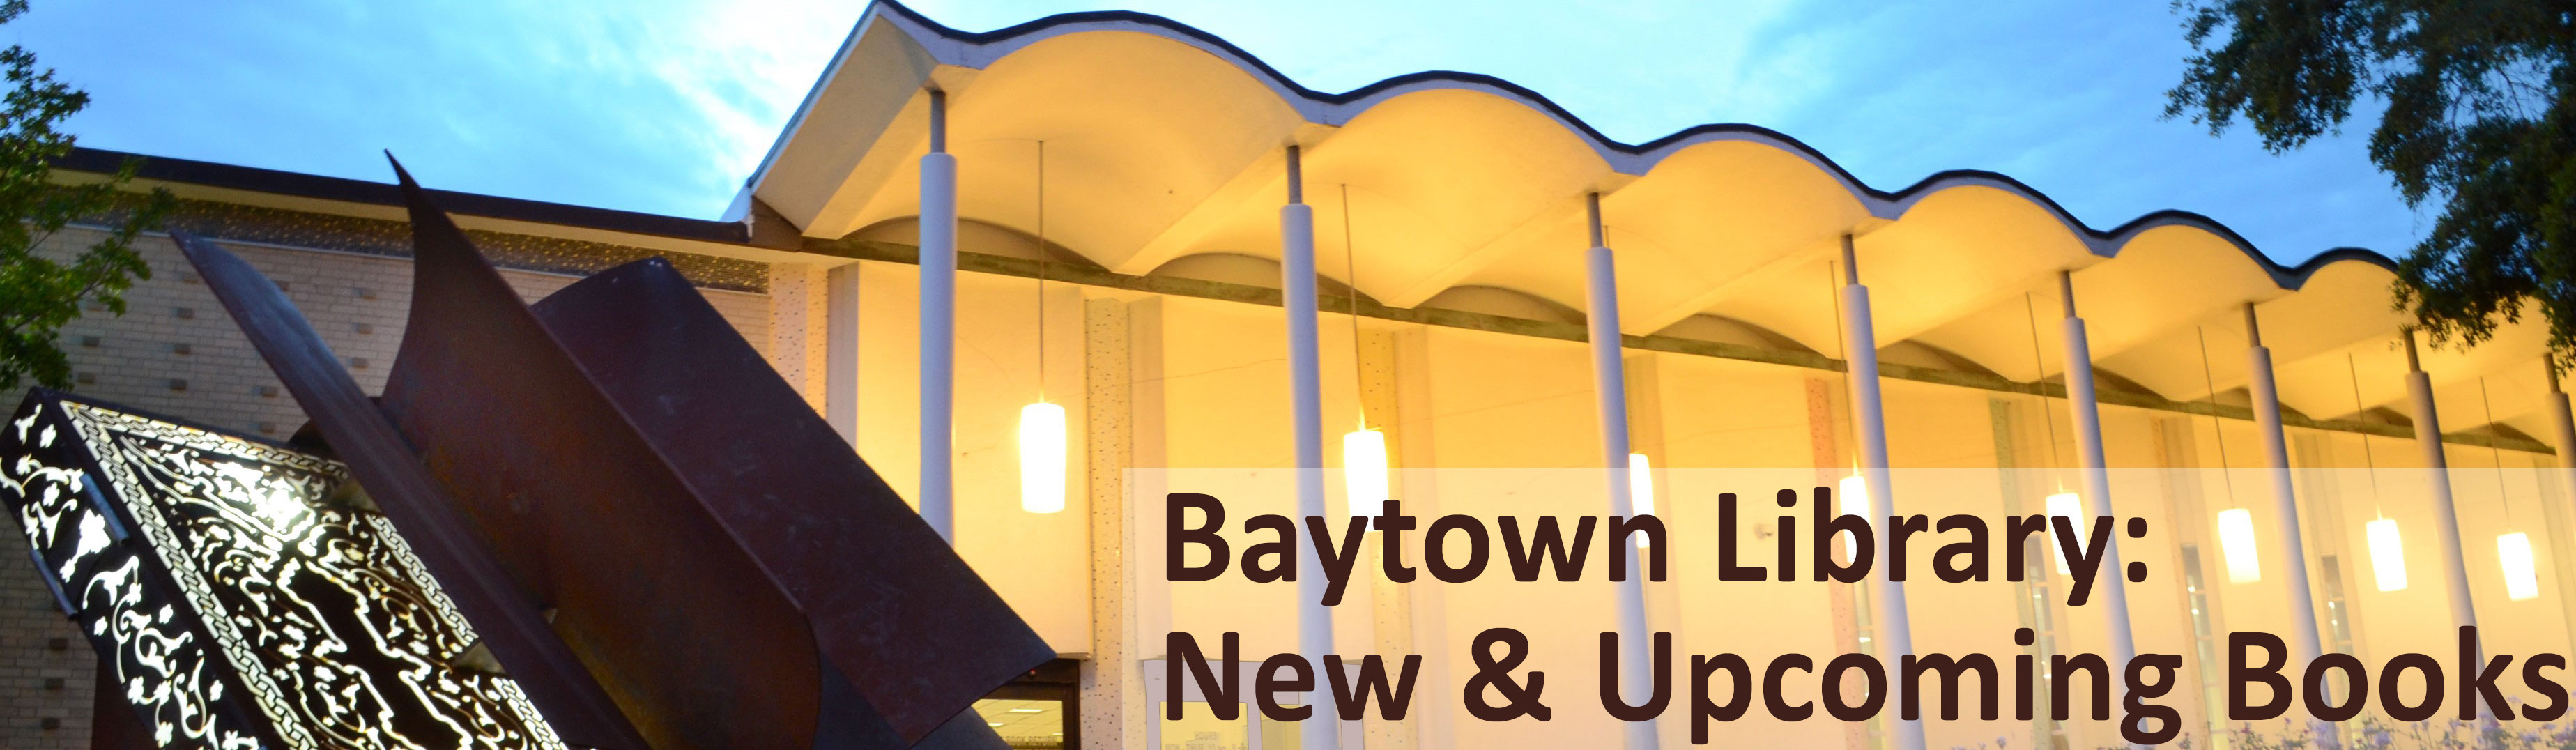 Baytown Library